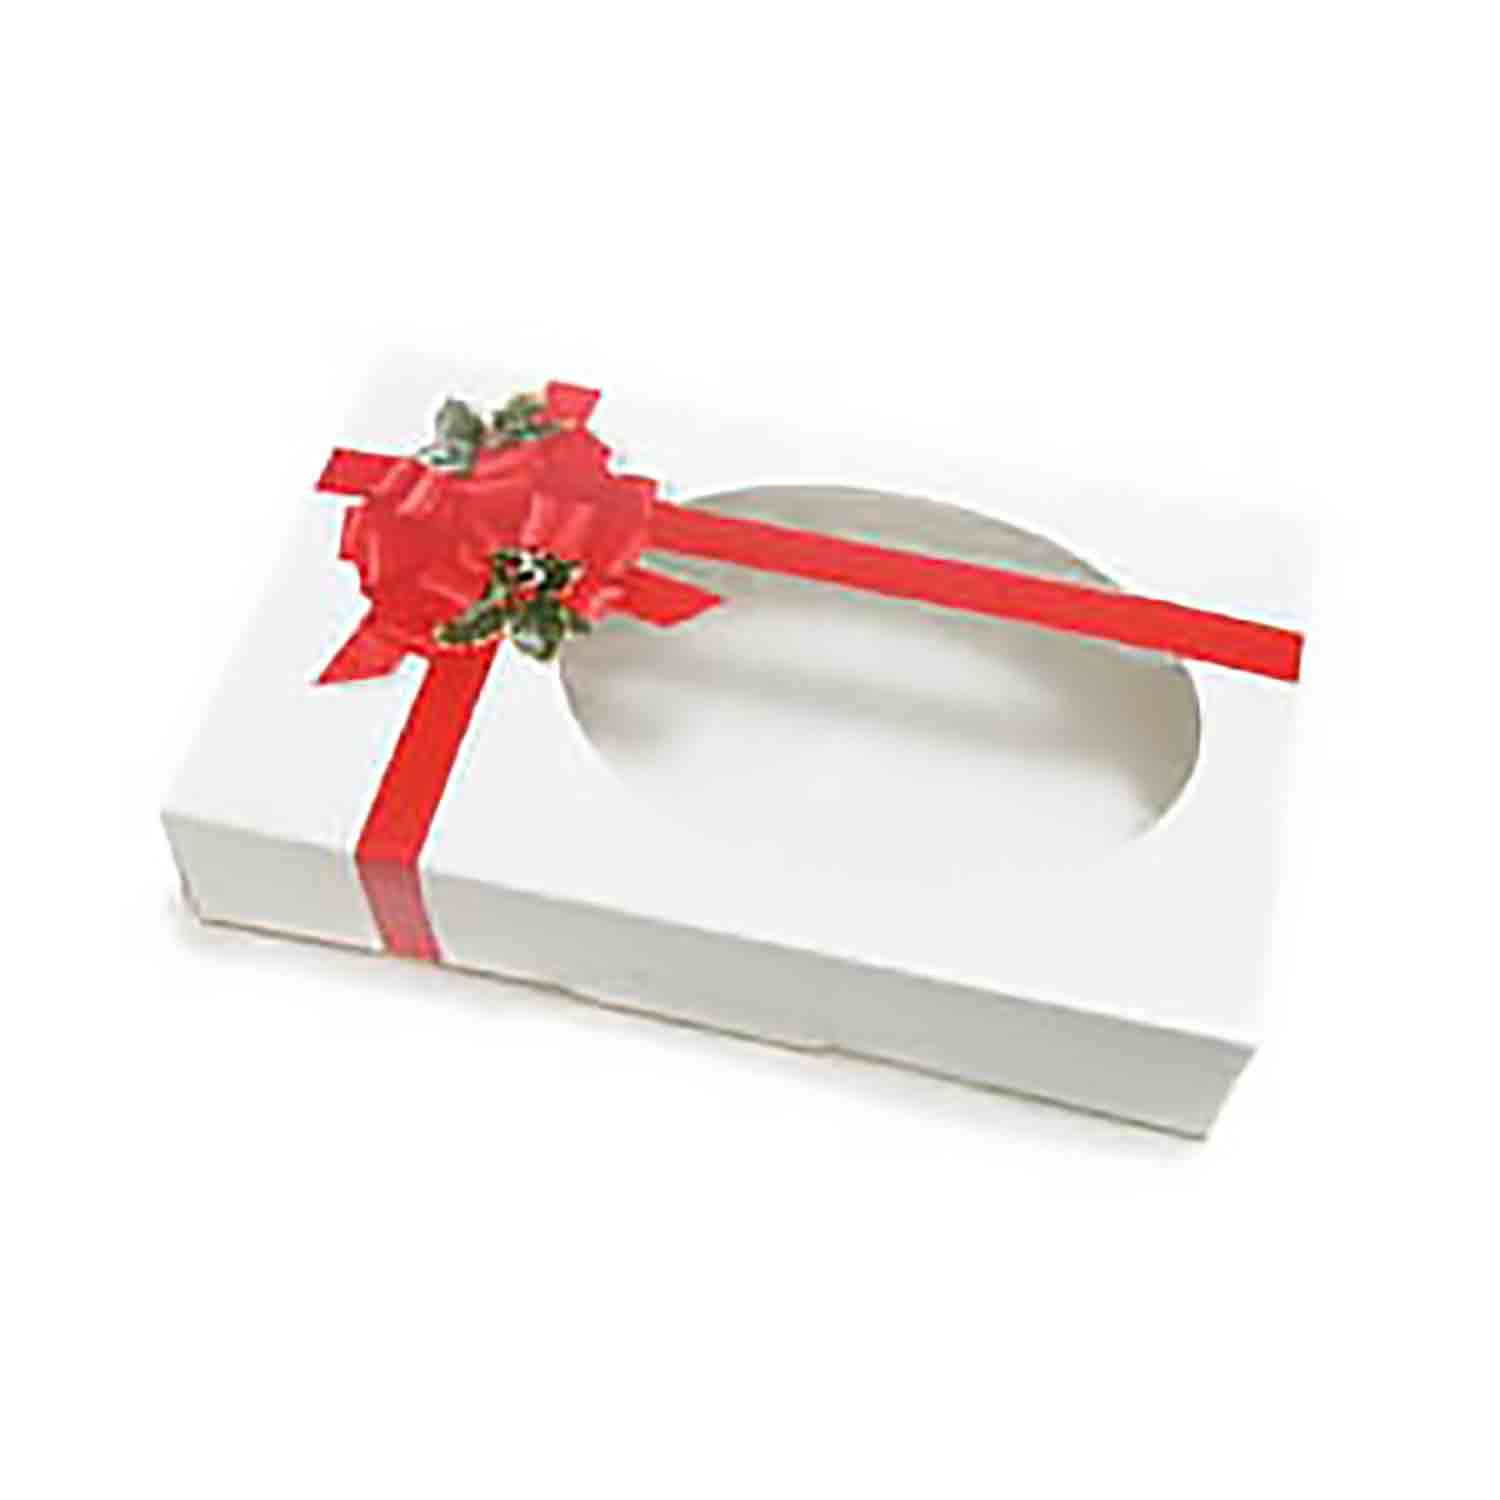 1 lb. Ribbon & Holly Cookie Box